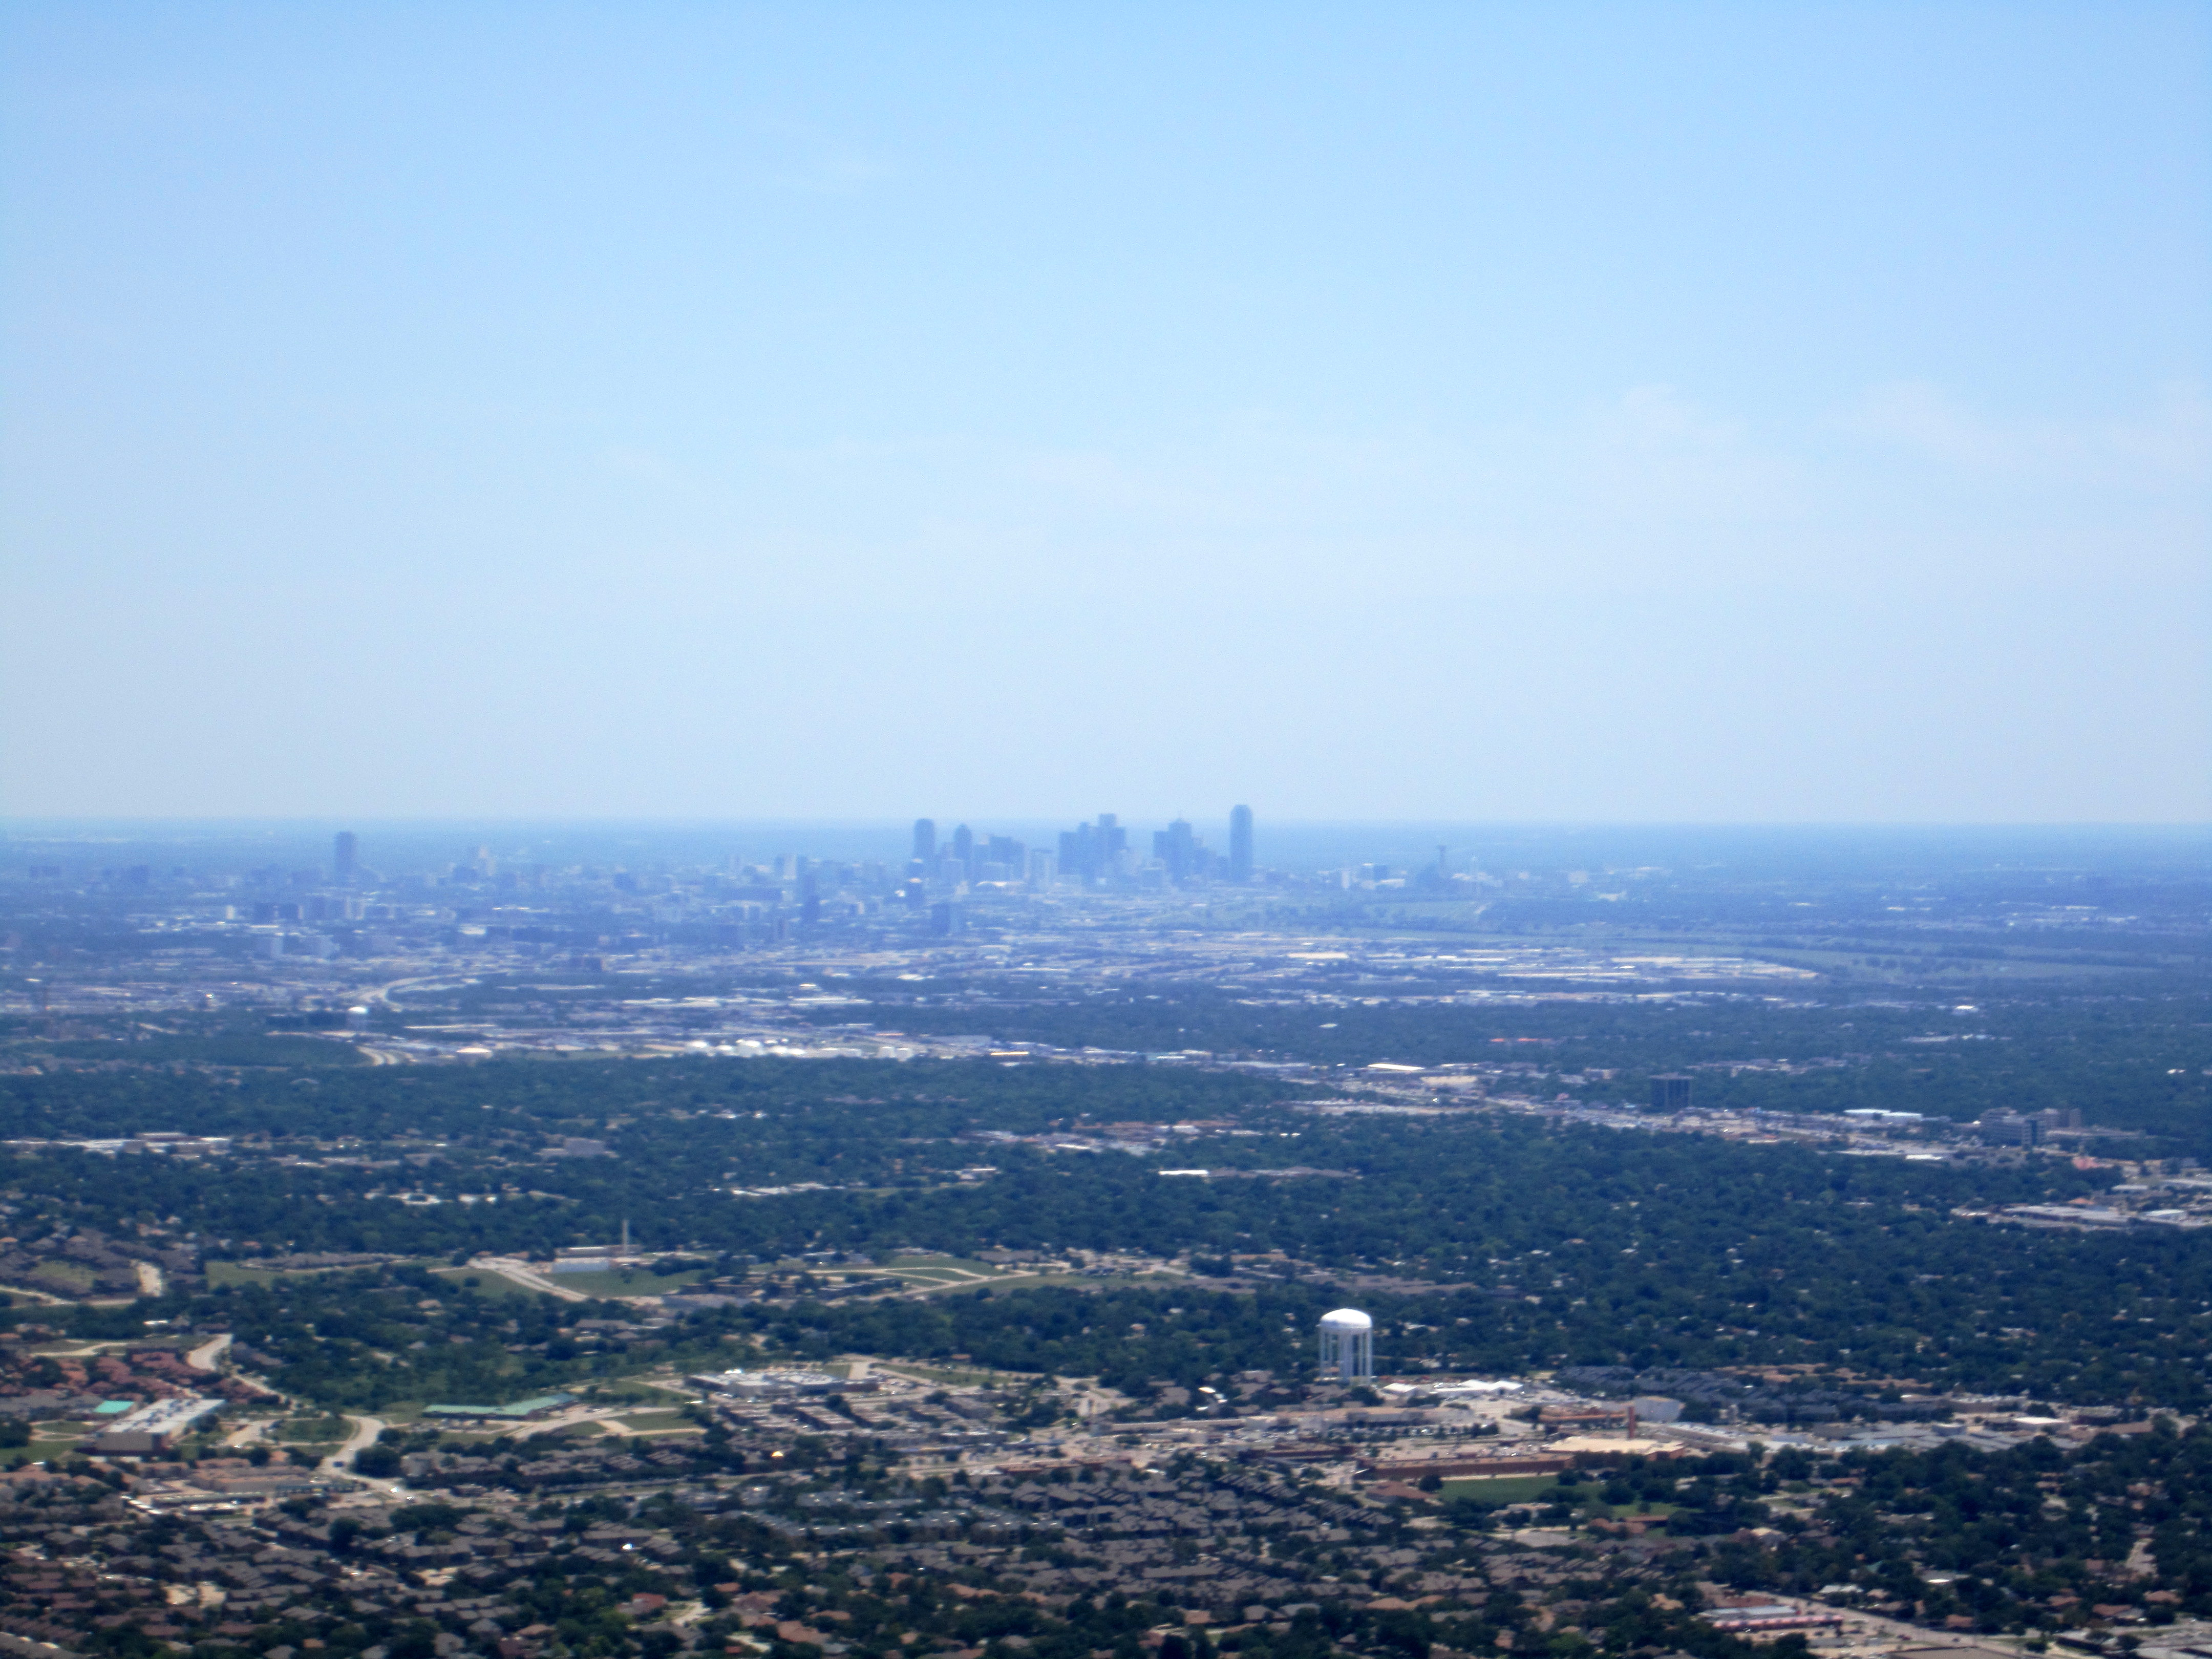 Dallas – Fort Worth Metroplex